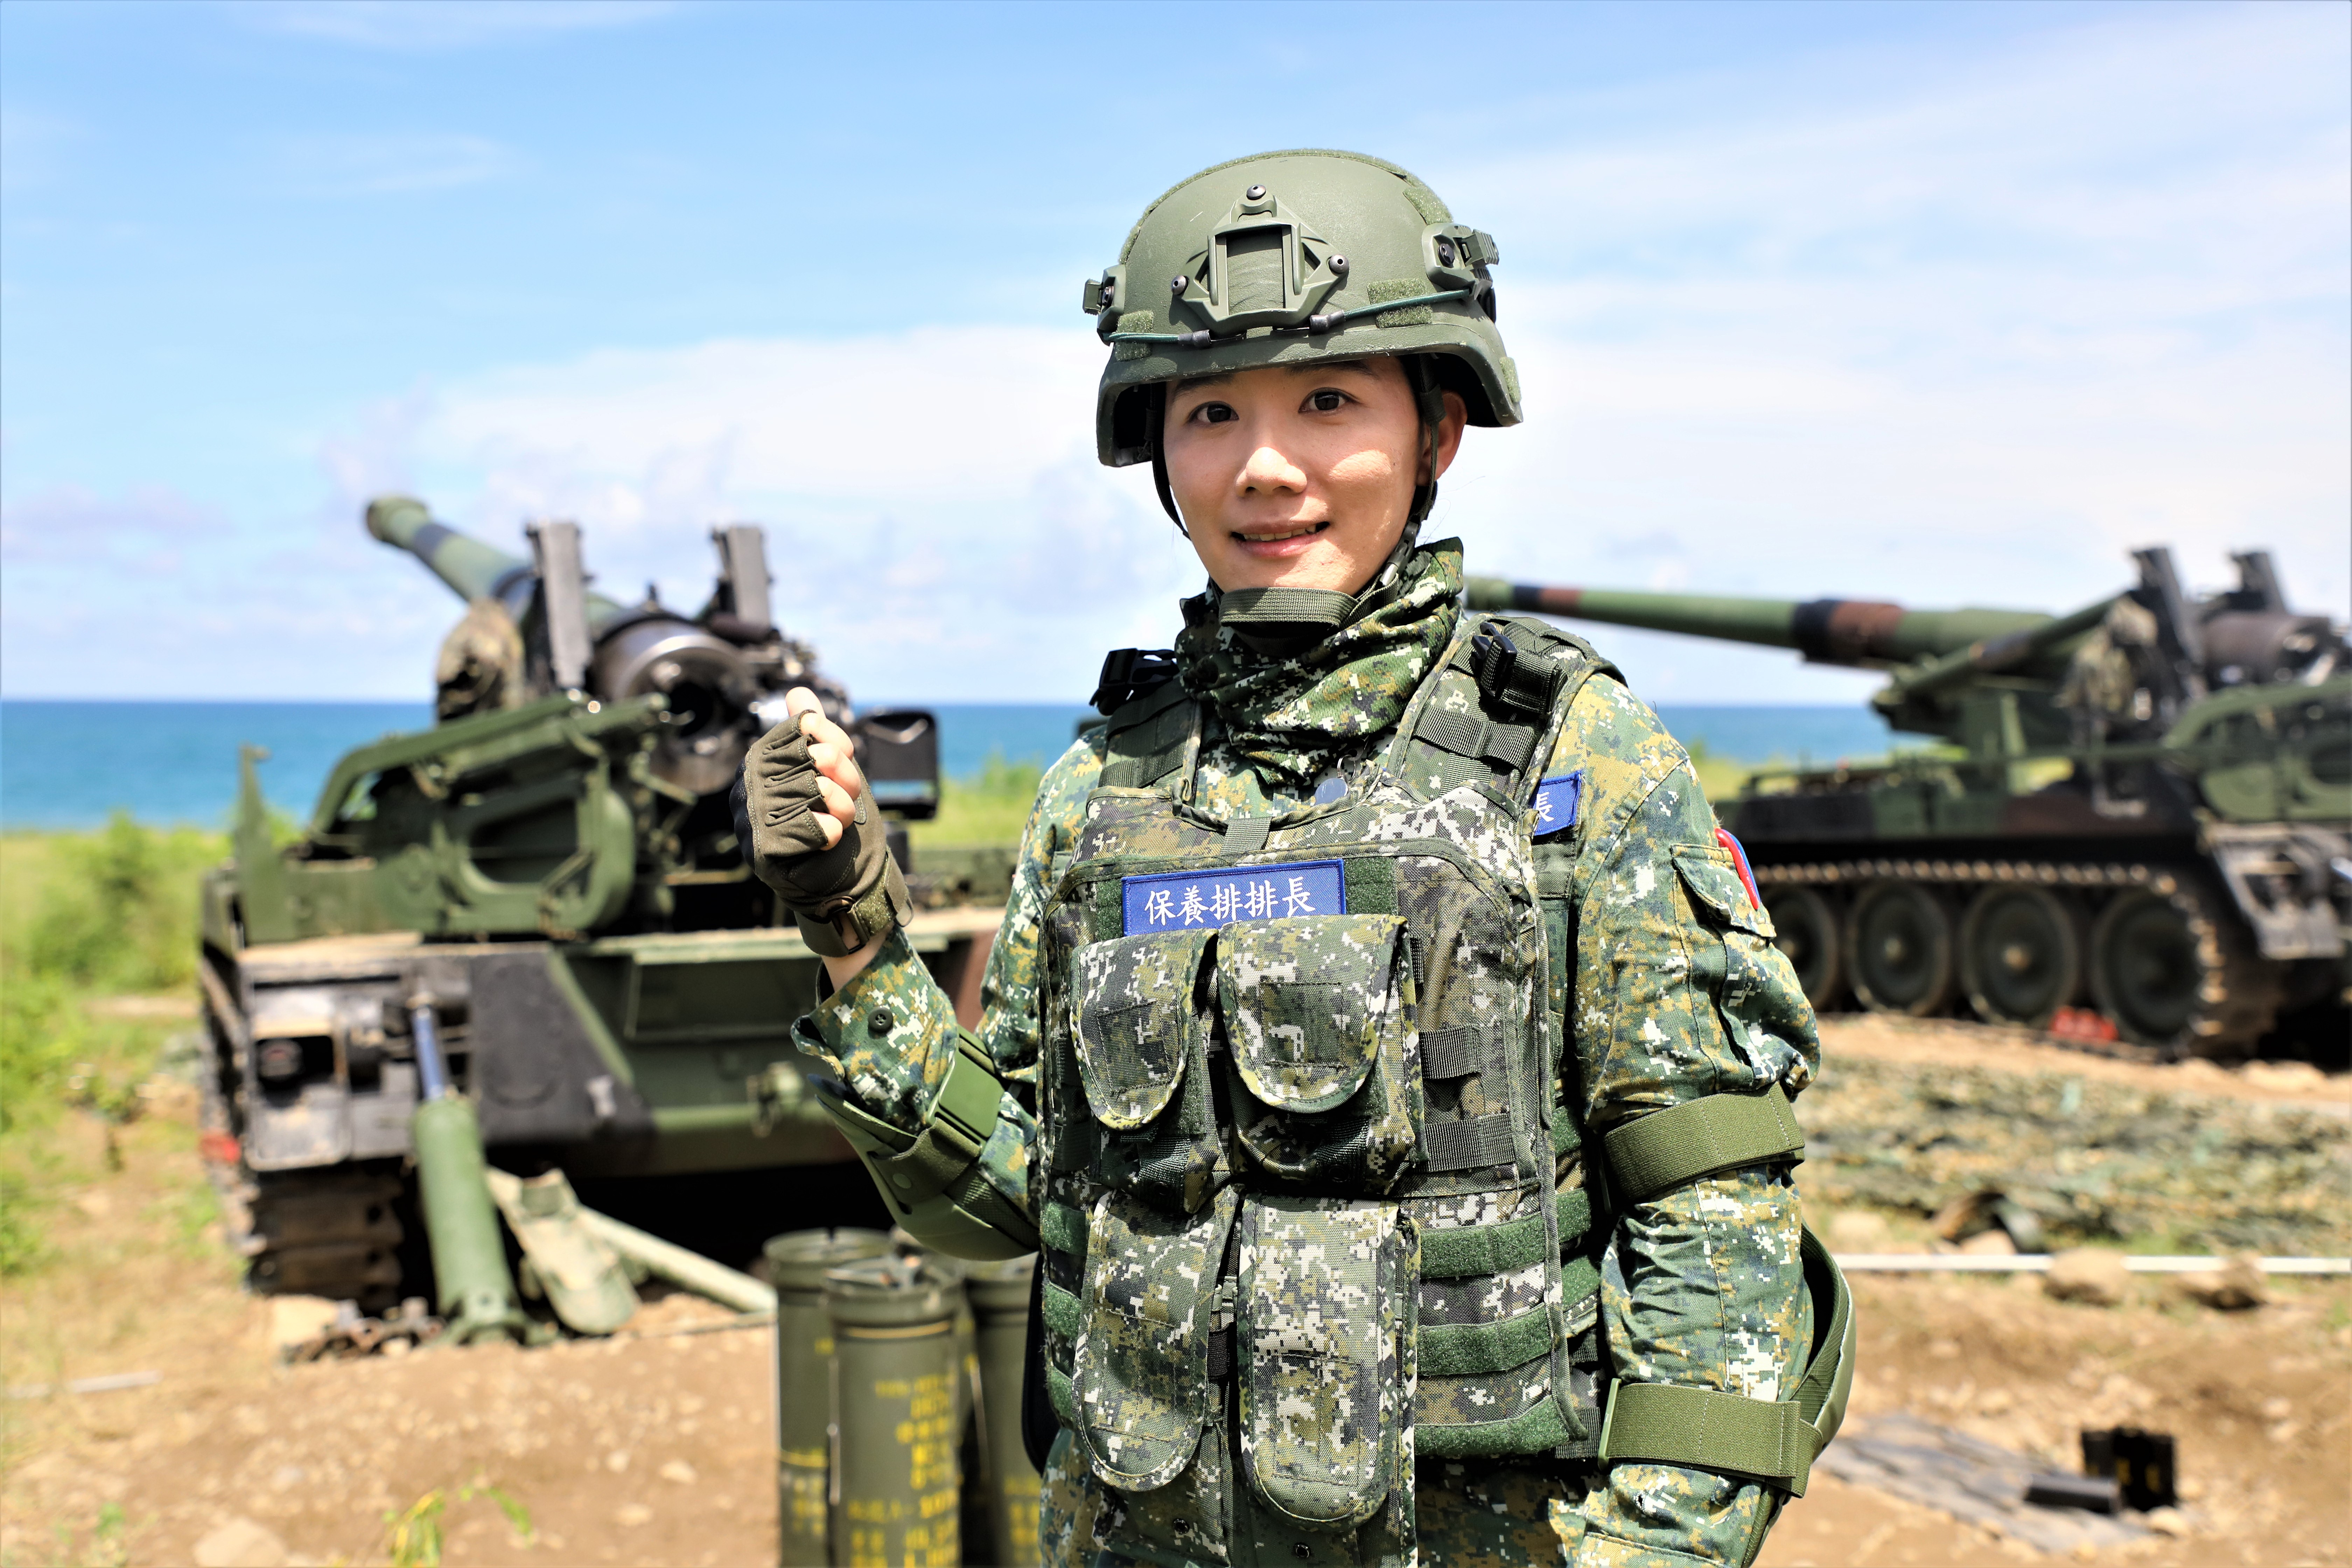 From Enlisted to Officer, LT Lin never gives up challenging herself